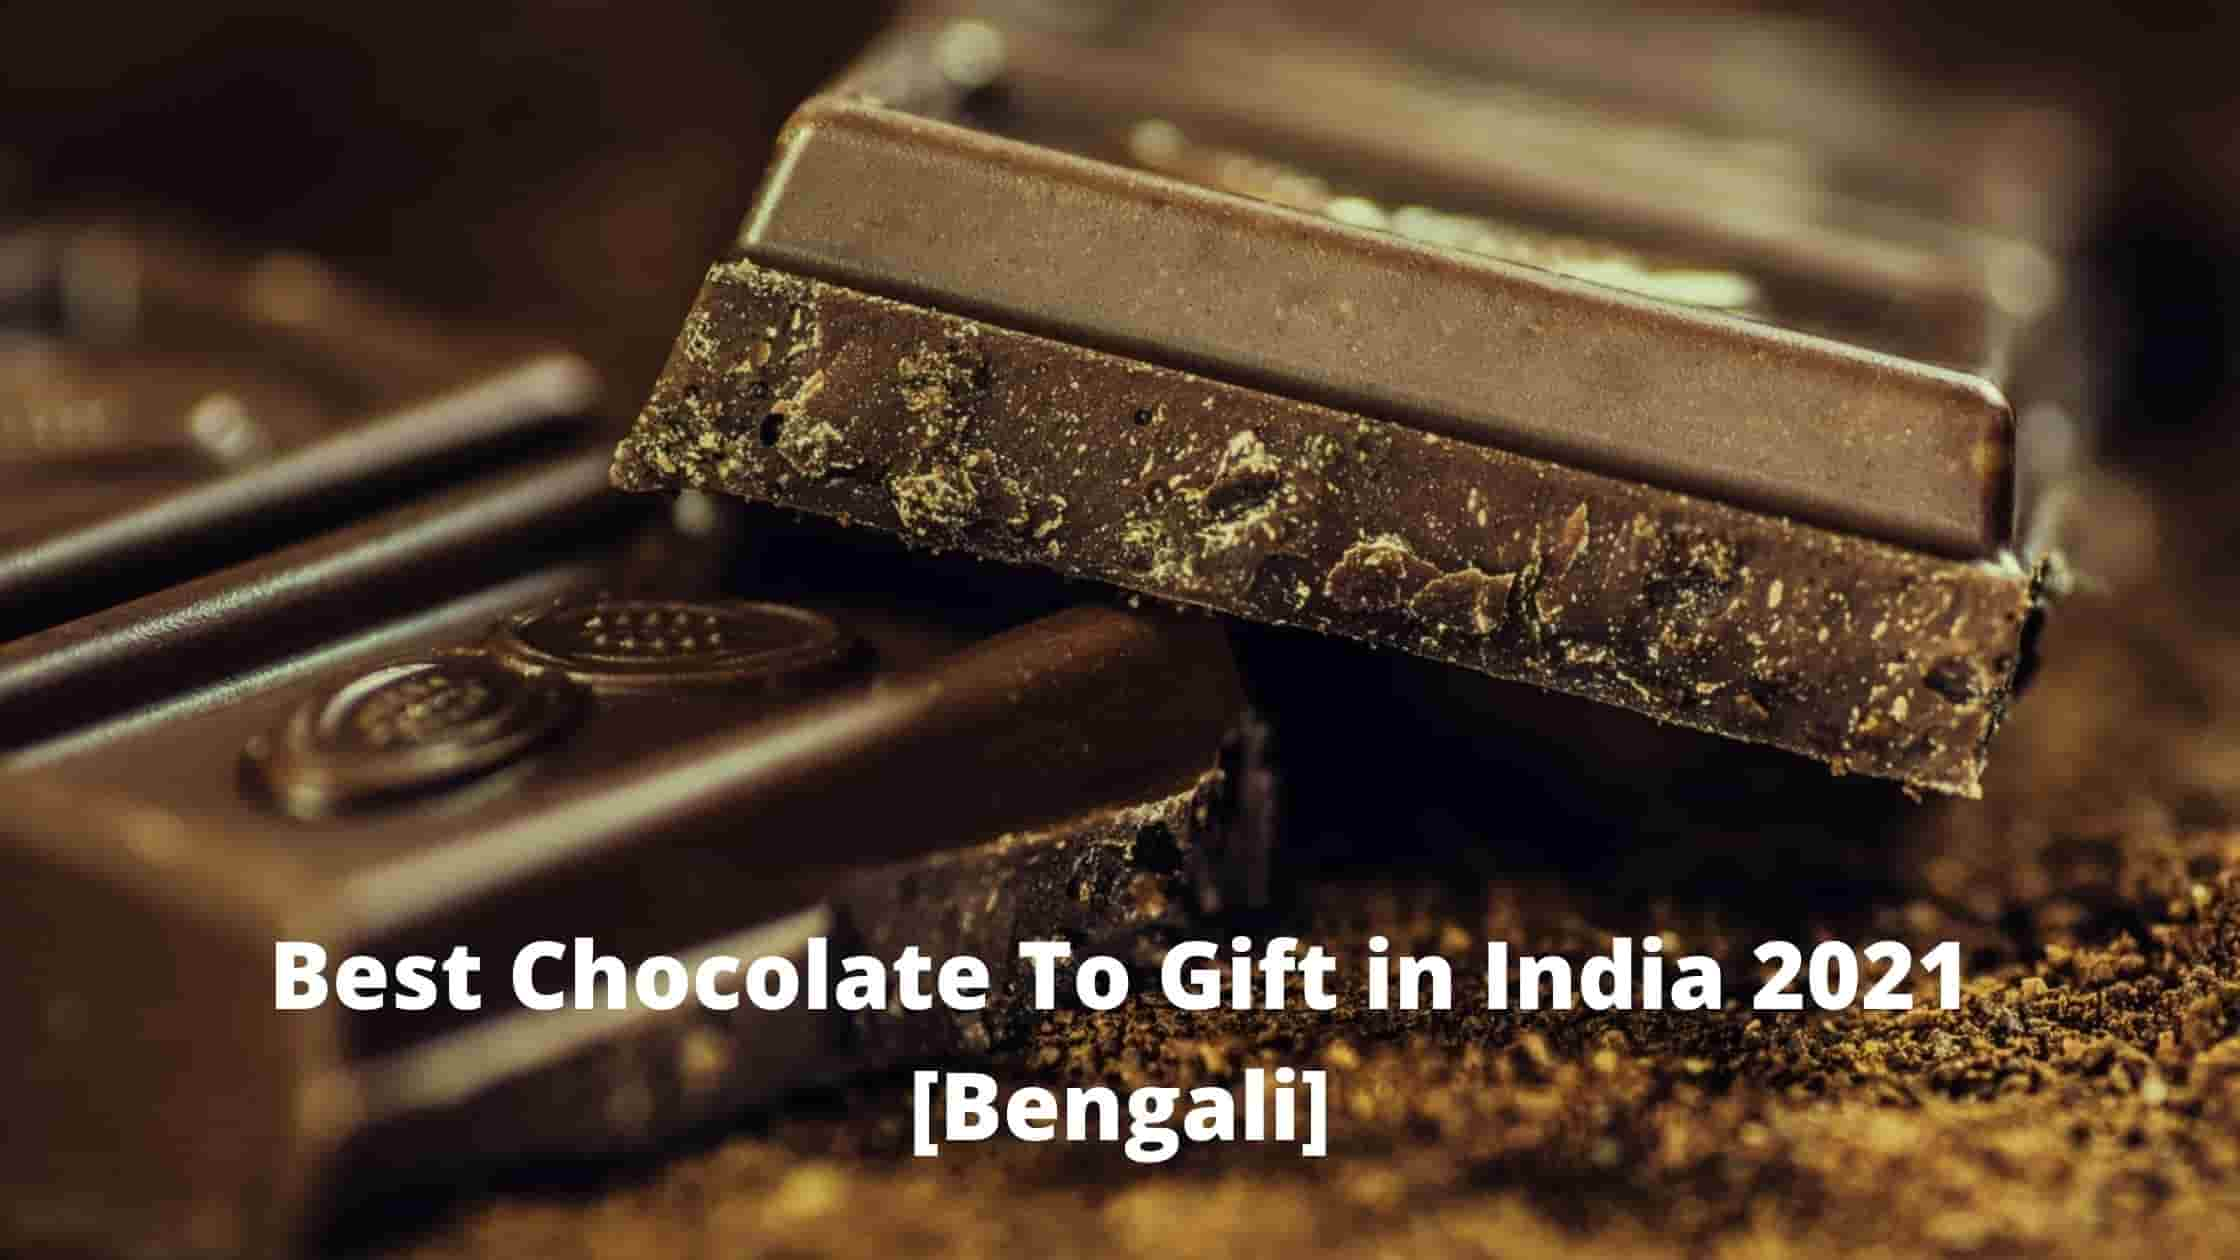 Best Chocolate To Gift in India 2021 [Bengali]